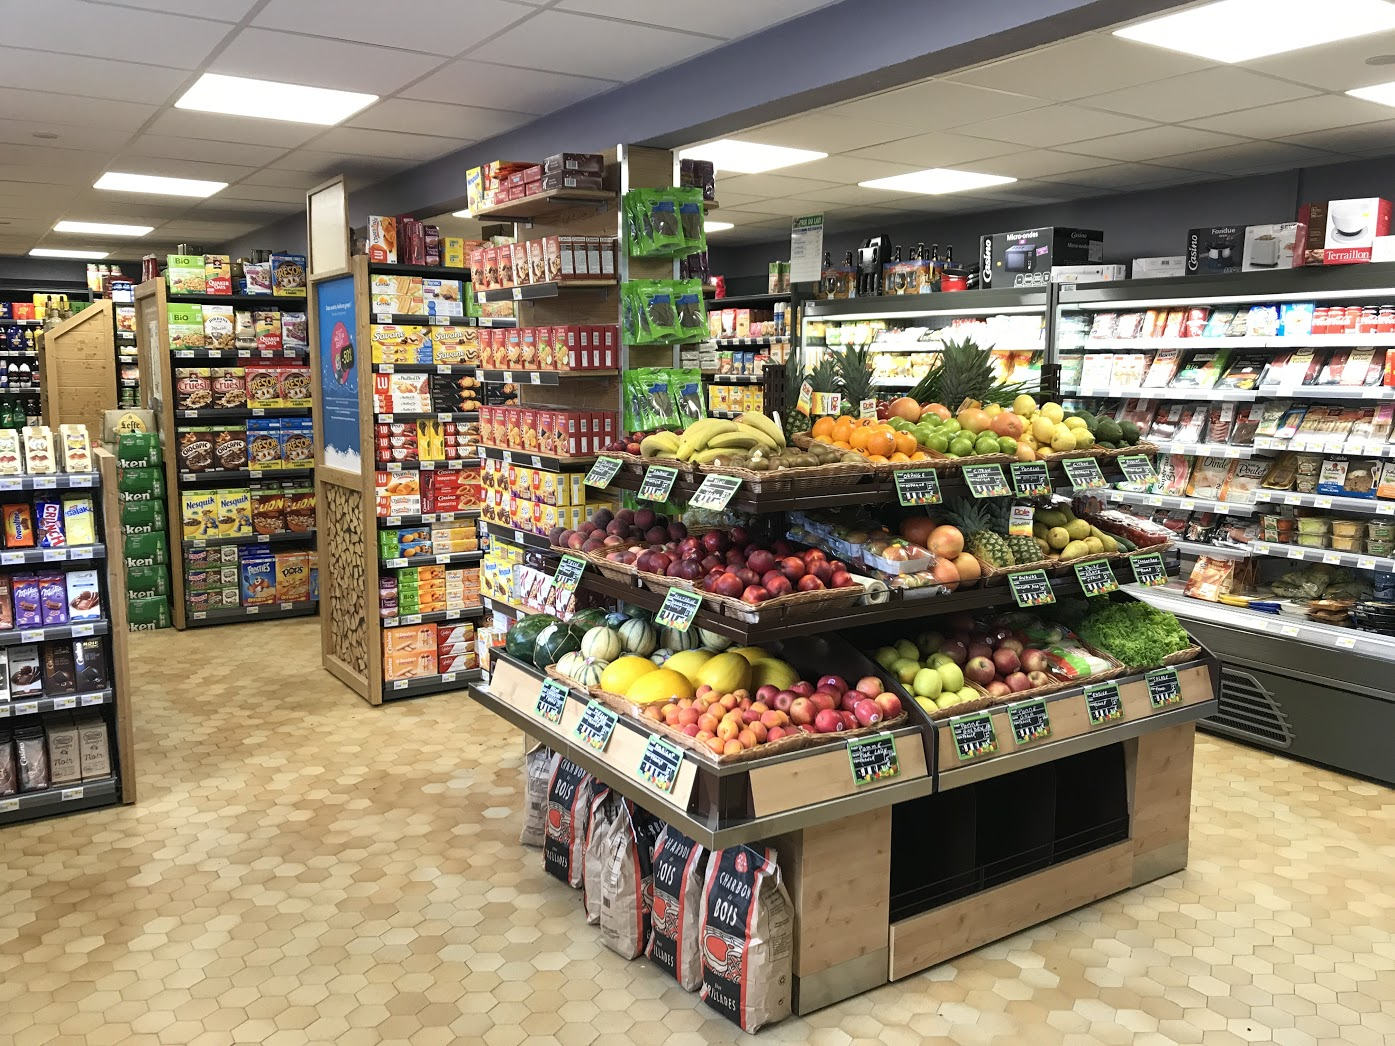 Sherpa supermarket Contamines-Montjoie (Les) - hameaux du lay fruits and vegetables